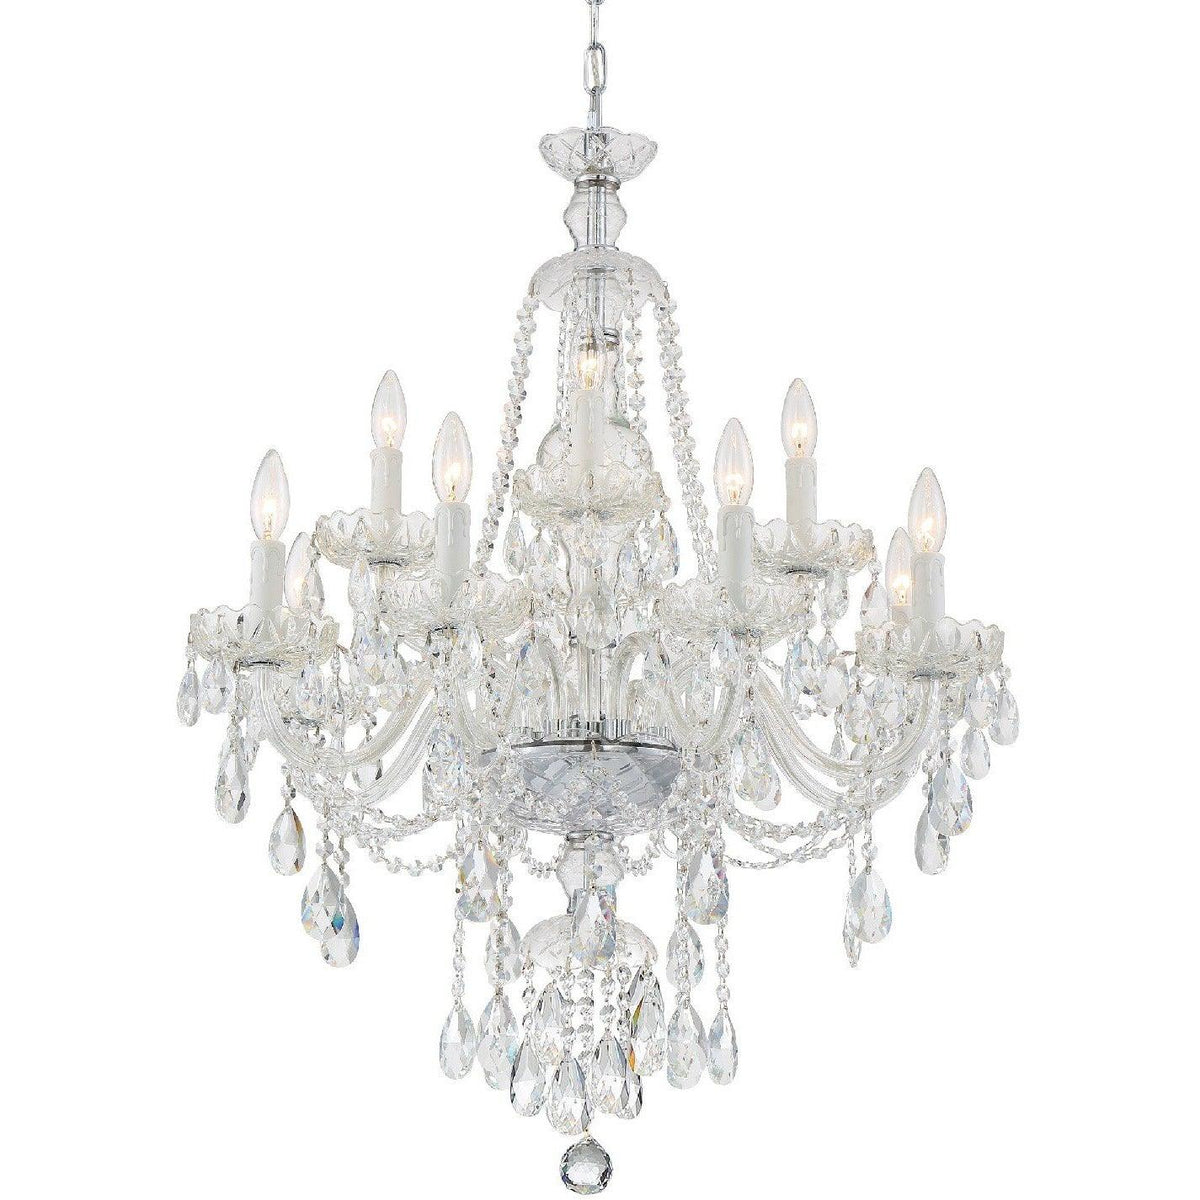 Crystorama - CAN-A1312-CH-CL-MWP - 12 Light Chandelier - Candace - Polished Chrome